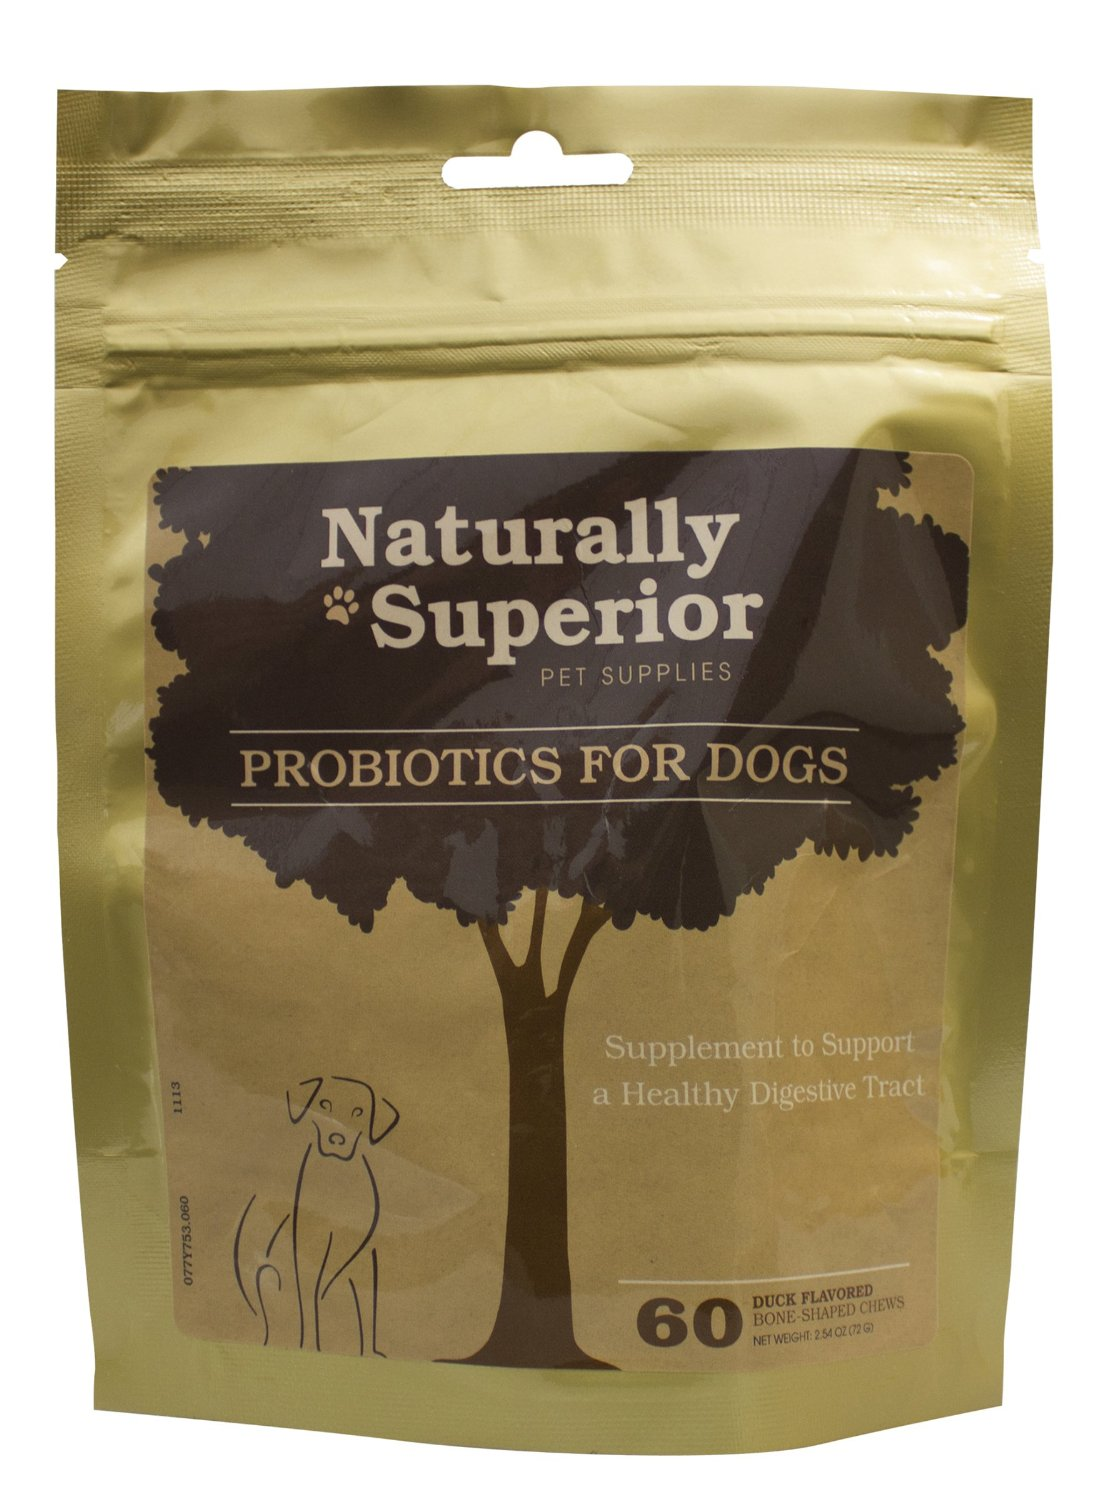 Naturally Superior Pet Supplies Probiotics For Dogs